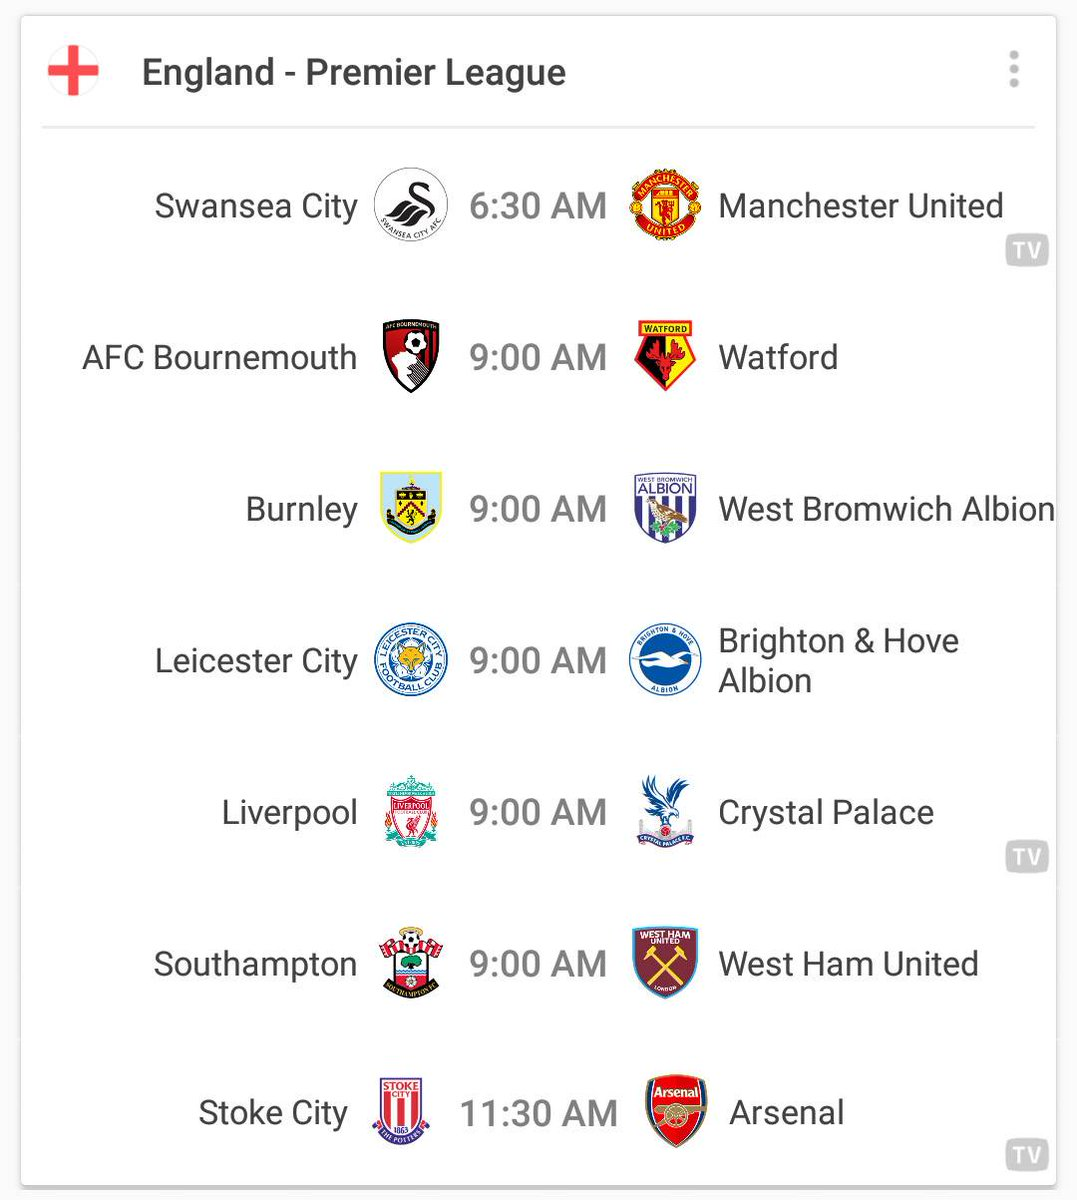 THIS  IS  WHAT  A  SATURDAY  SHOULD  LOOK  LIKE!   #PremierLeague #Bundesliga #Ligue1 #LaLiga<br>http://pic.twitter.com/Age91wJG7v